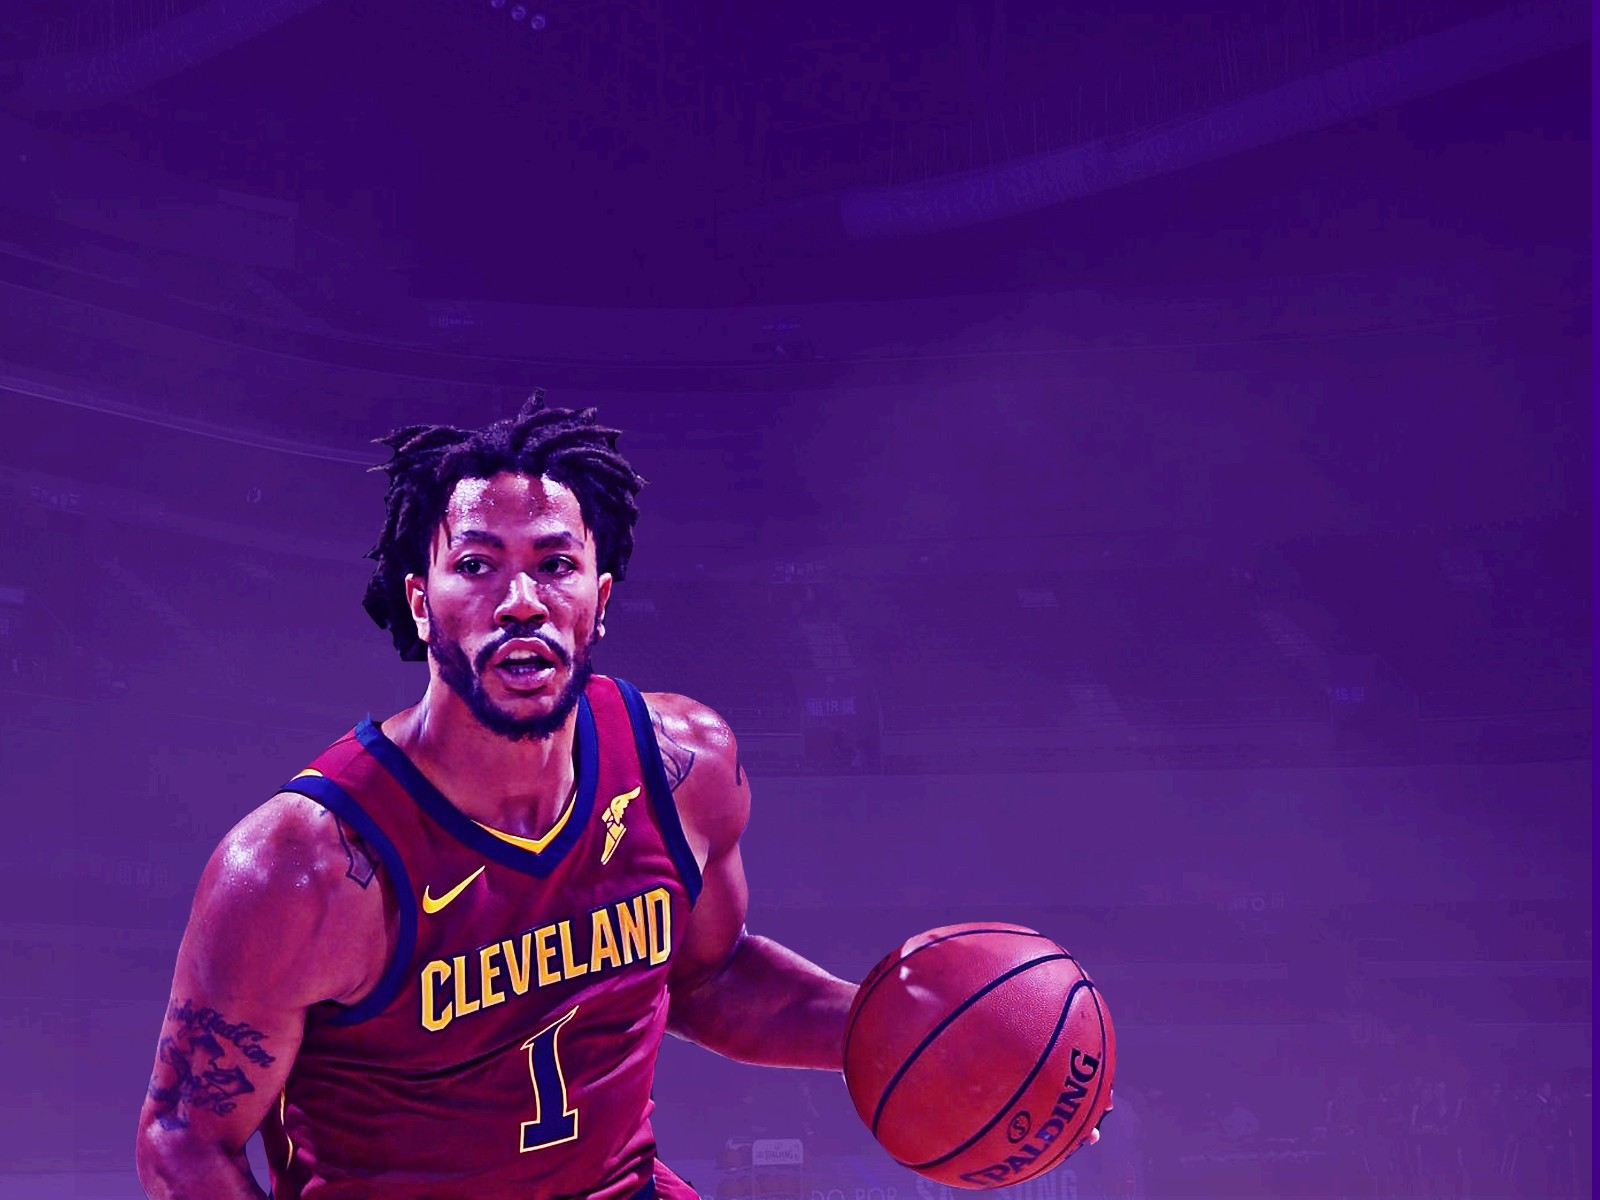 24ac75339280 A league source told cleveland.com that Derrick Rose plans on returning to  the Cavs. What do you make of him being ridiculed